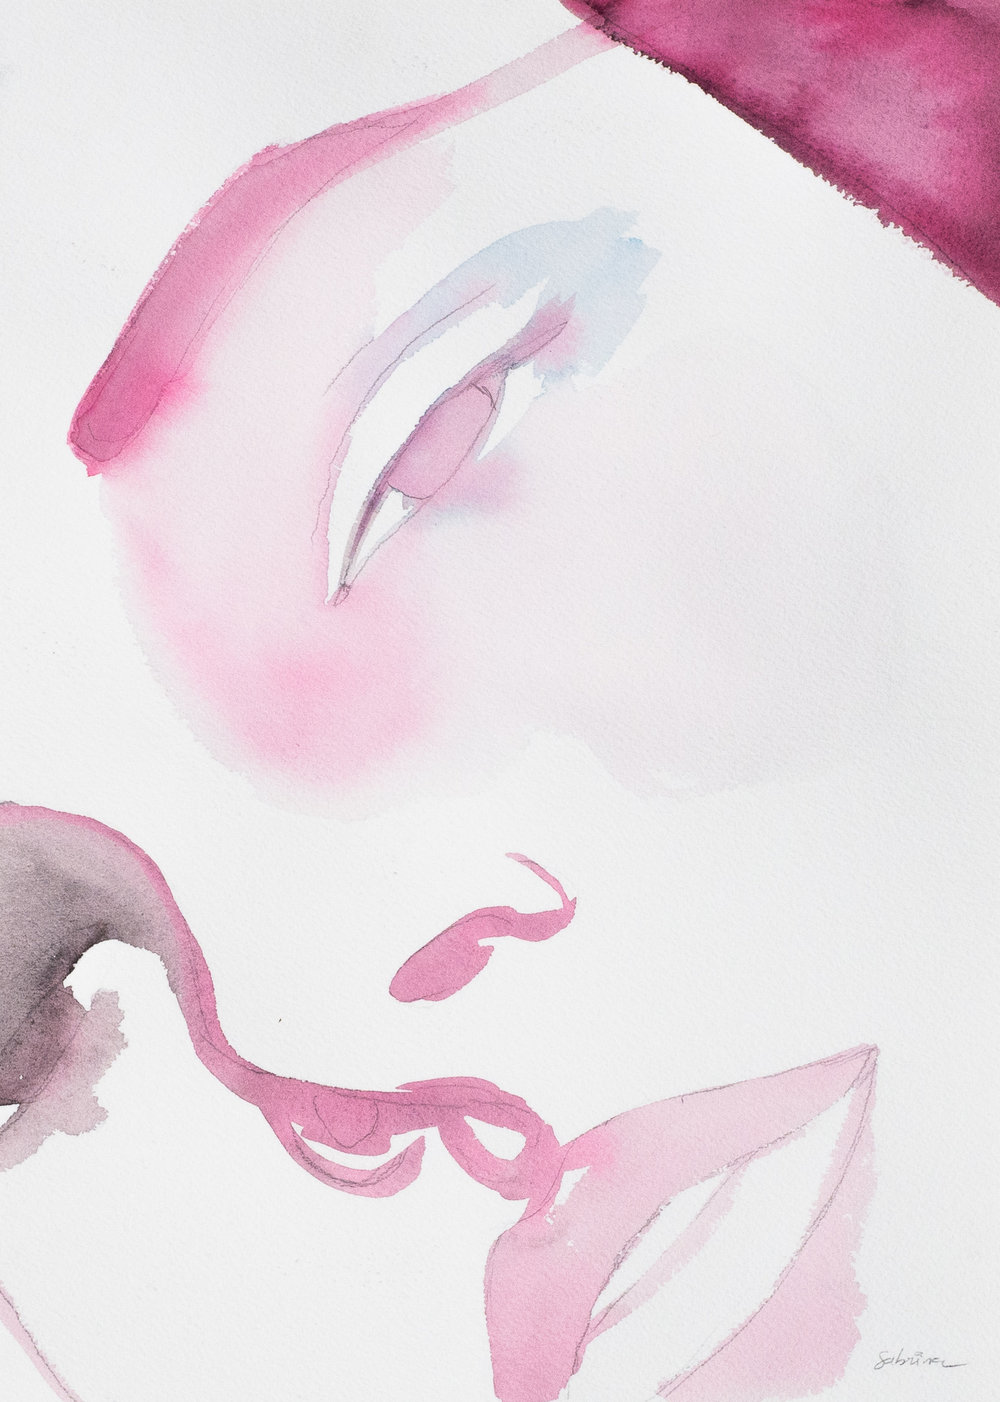 Watercolor on paper  36cm x 26cm